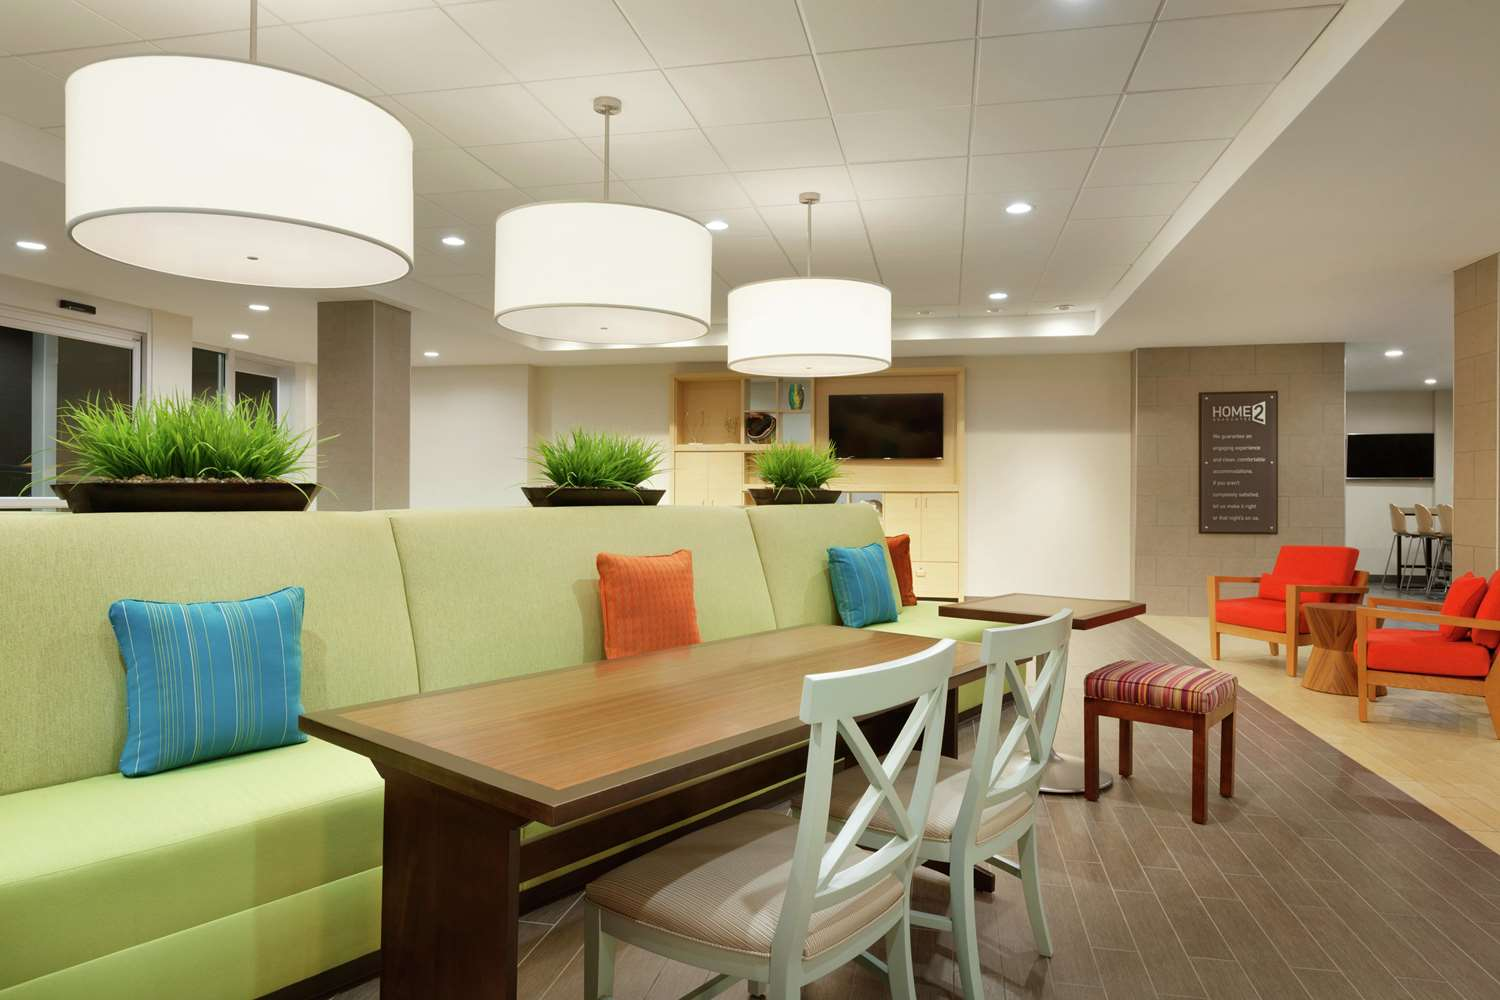 Lobby - Home2 Suites by Hilton El Paso